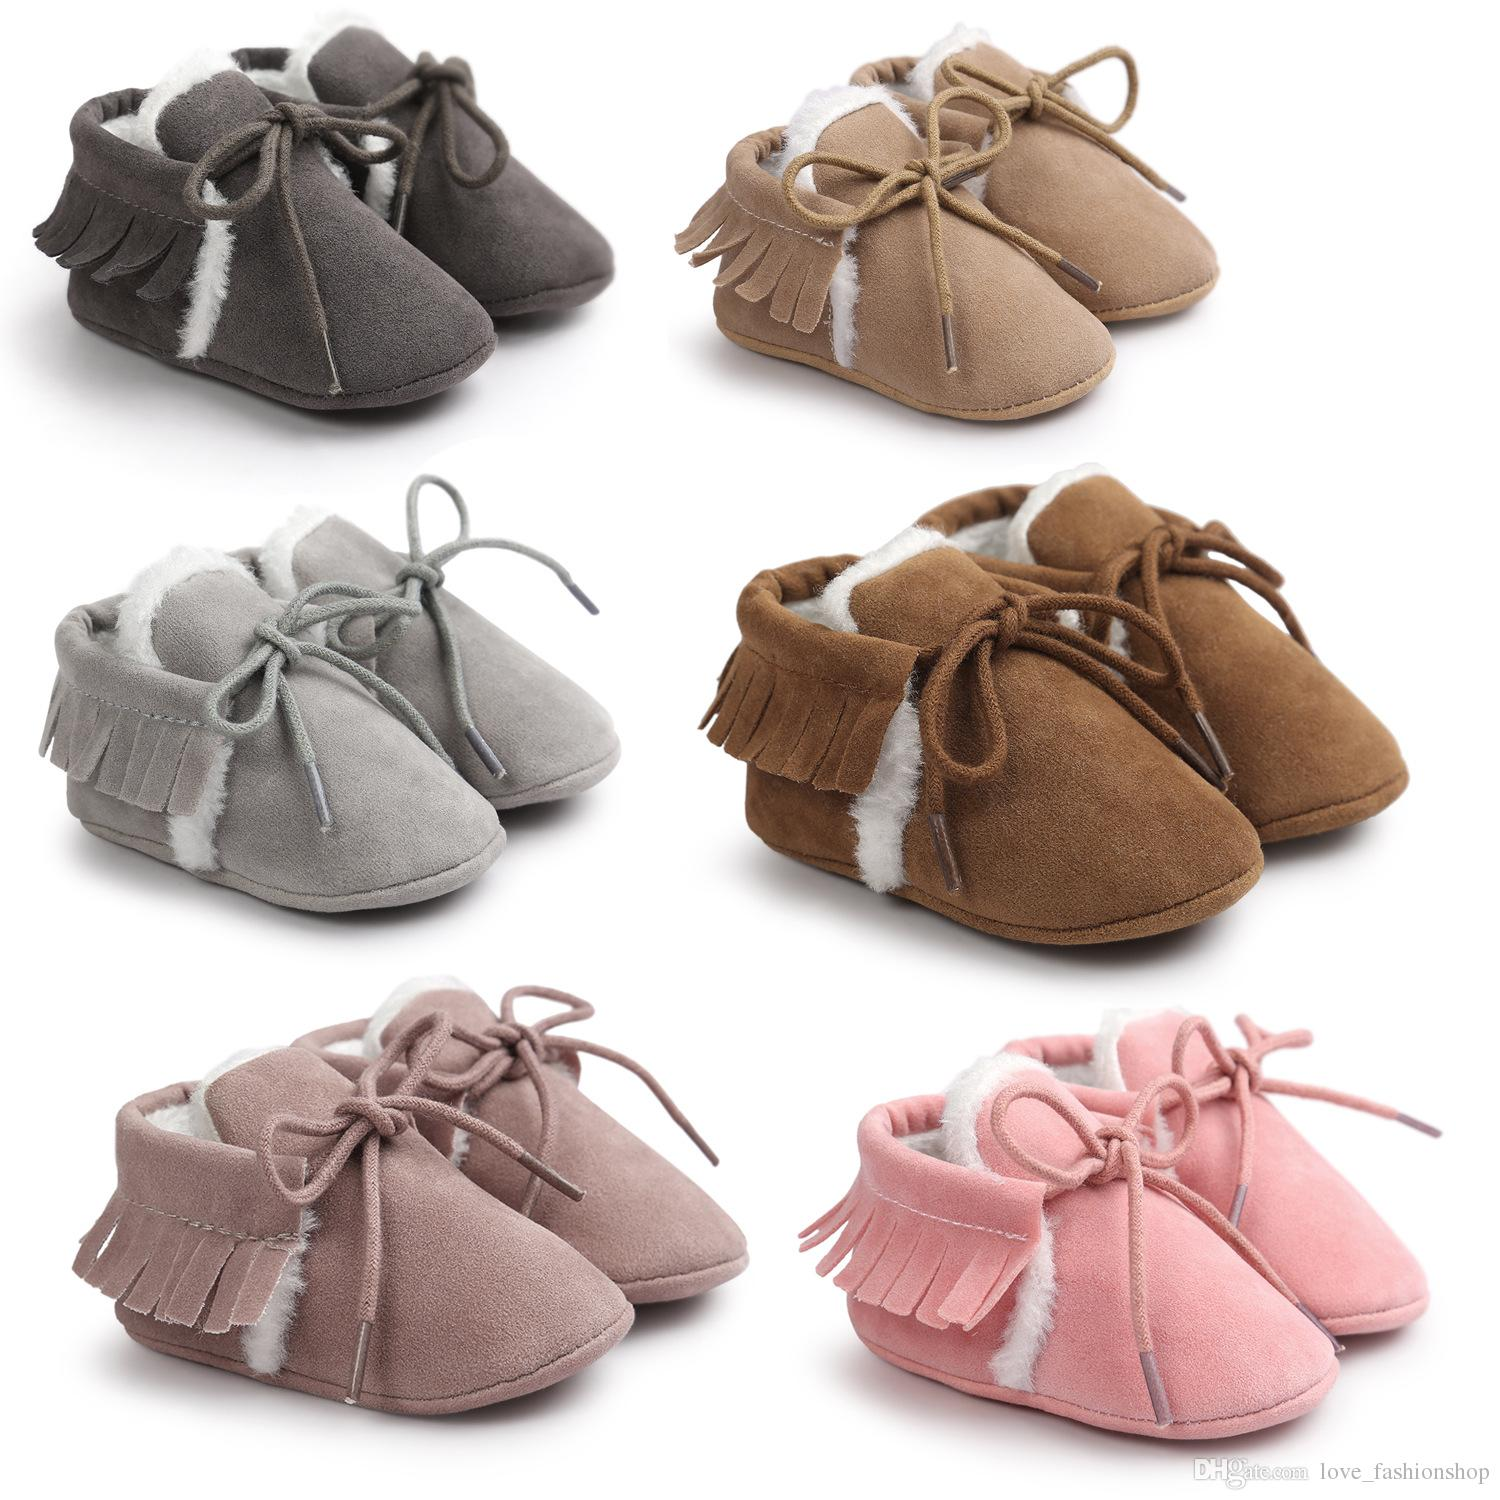 6 Colors Baby kids shoes Moccasins Warmer Soft PU Coral fleece first walker prewalker booties toddler girls Shoes Christmas gift